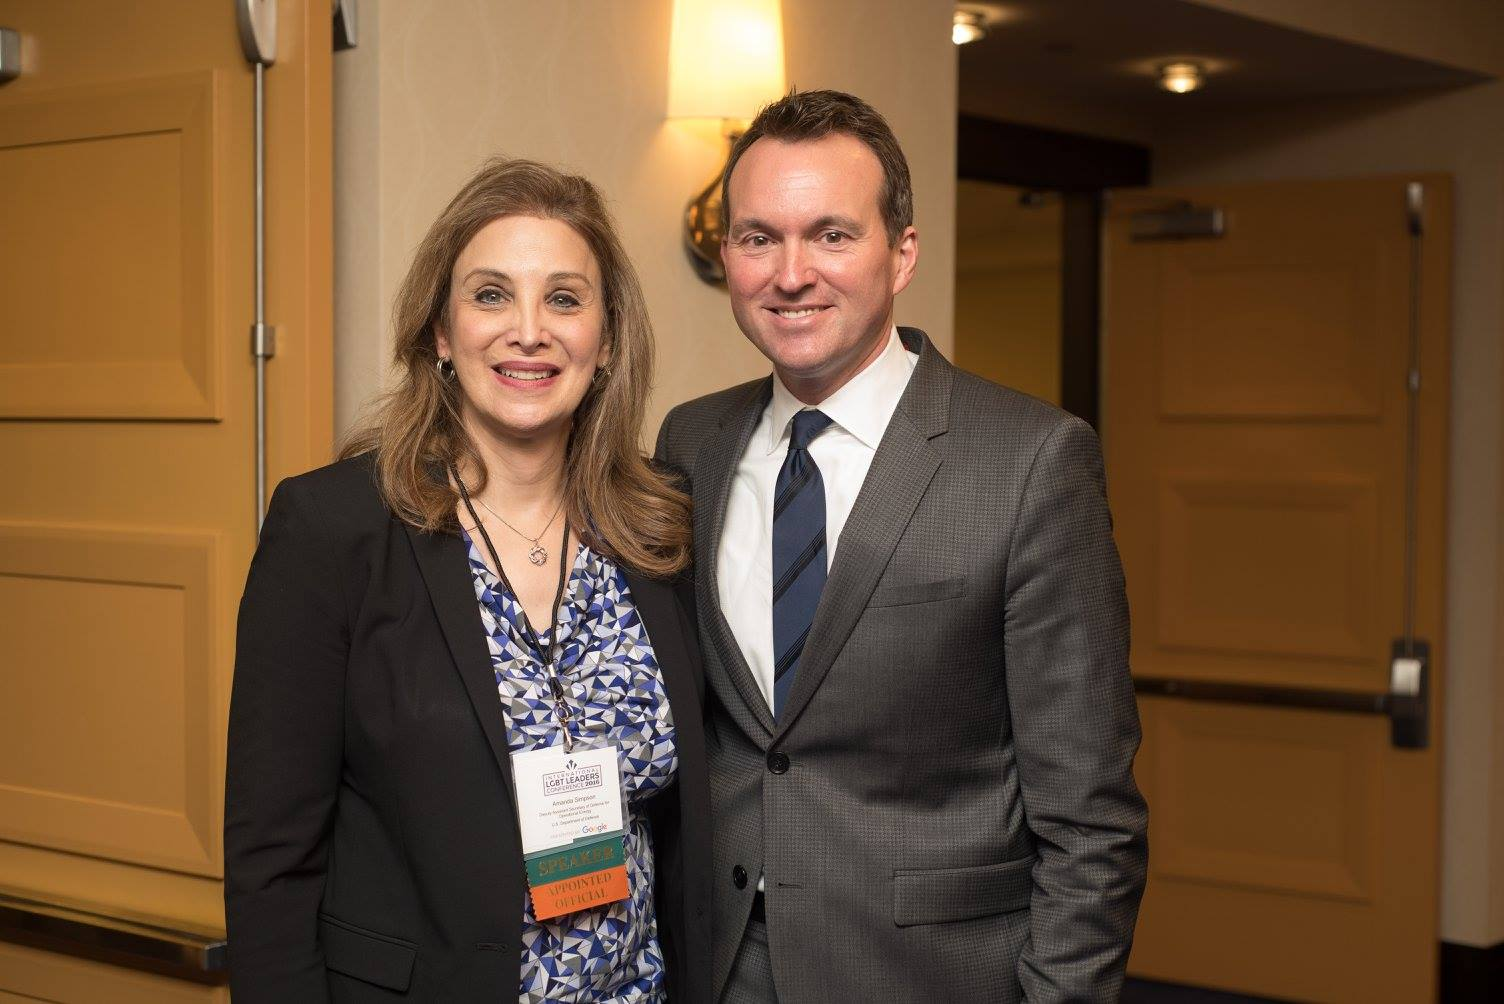 Former Army Secretary Eric Fanning with former Defense Department official Amanda Simpson at the International LGBTQ Leaders Conference in 2017.